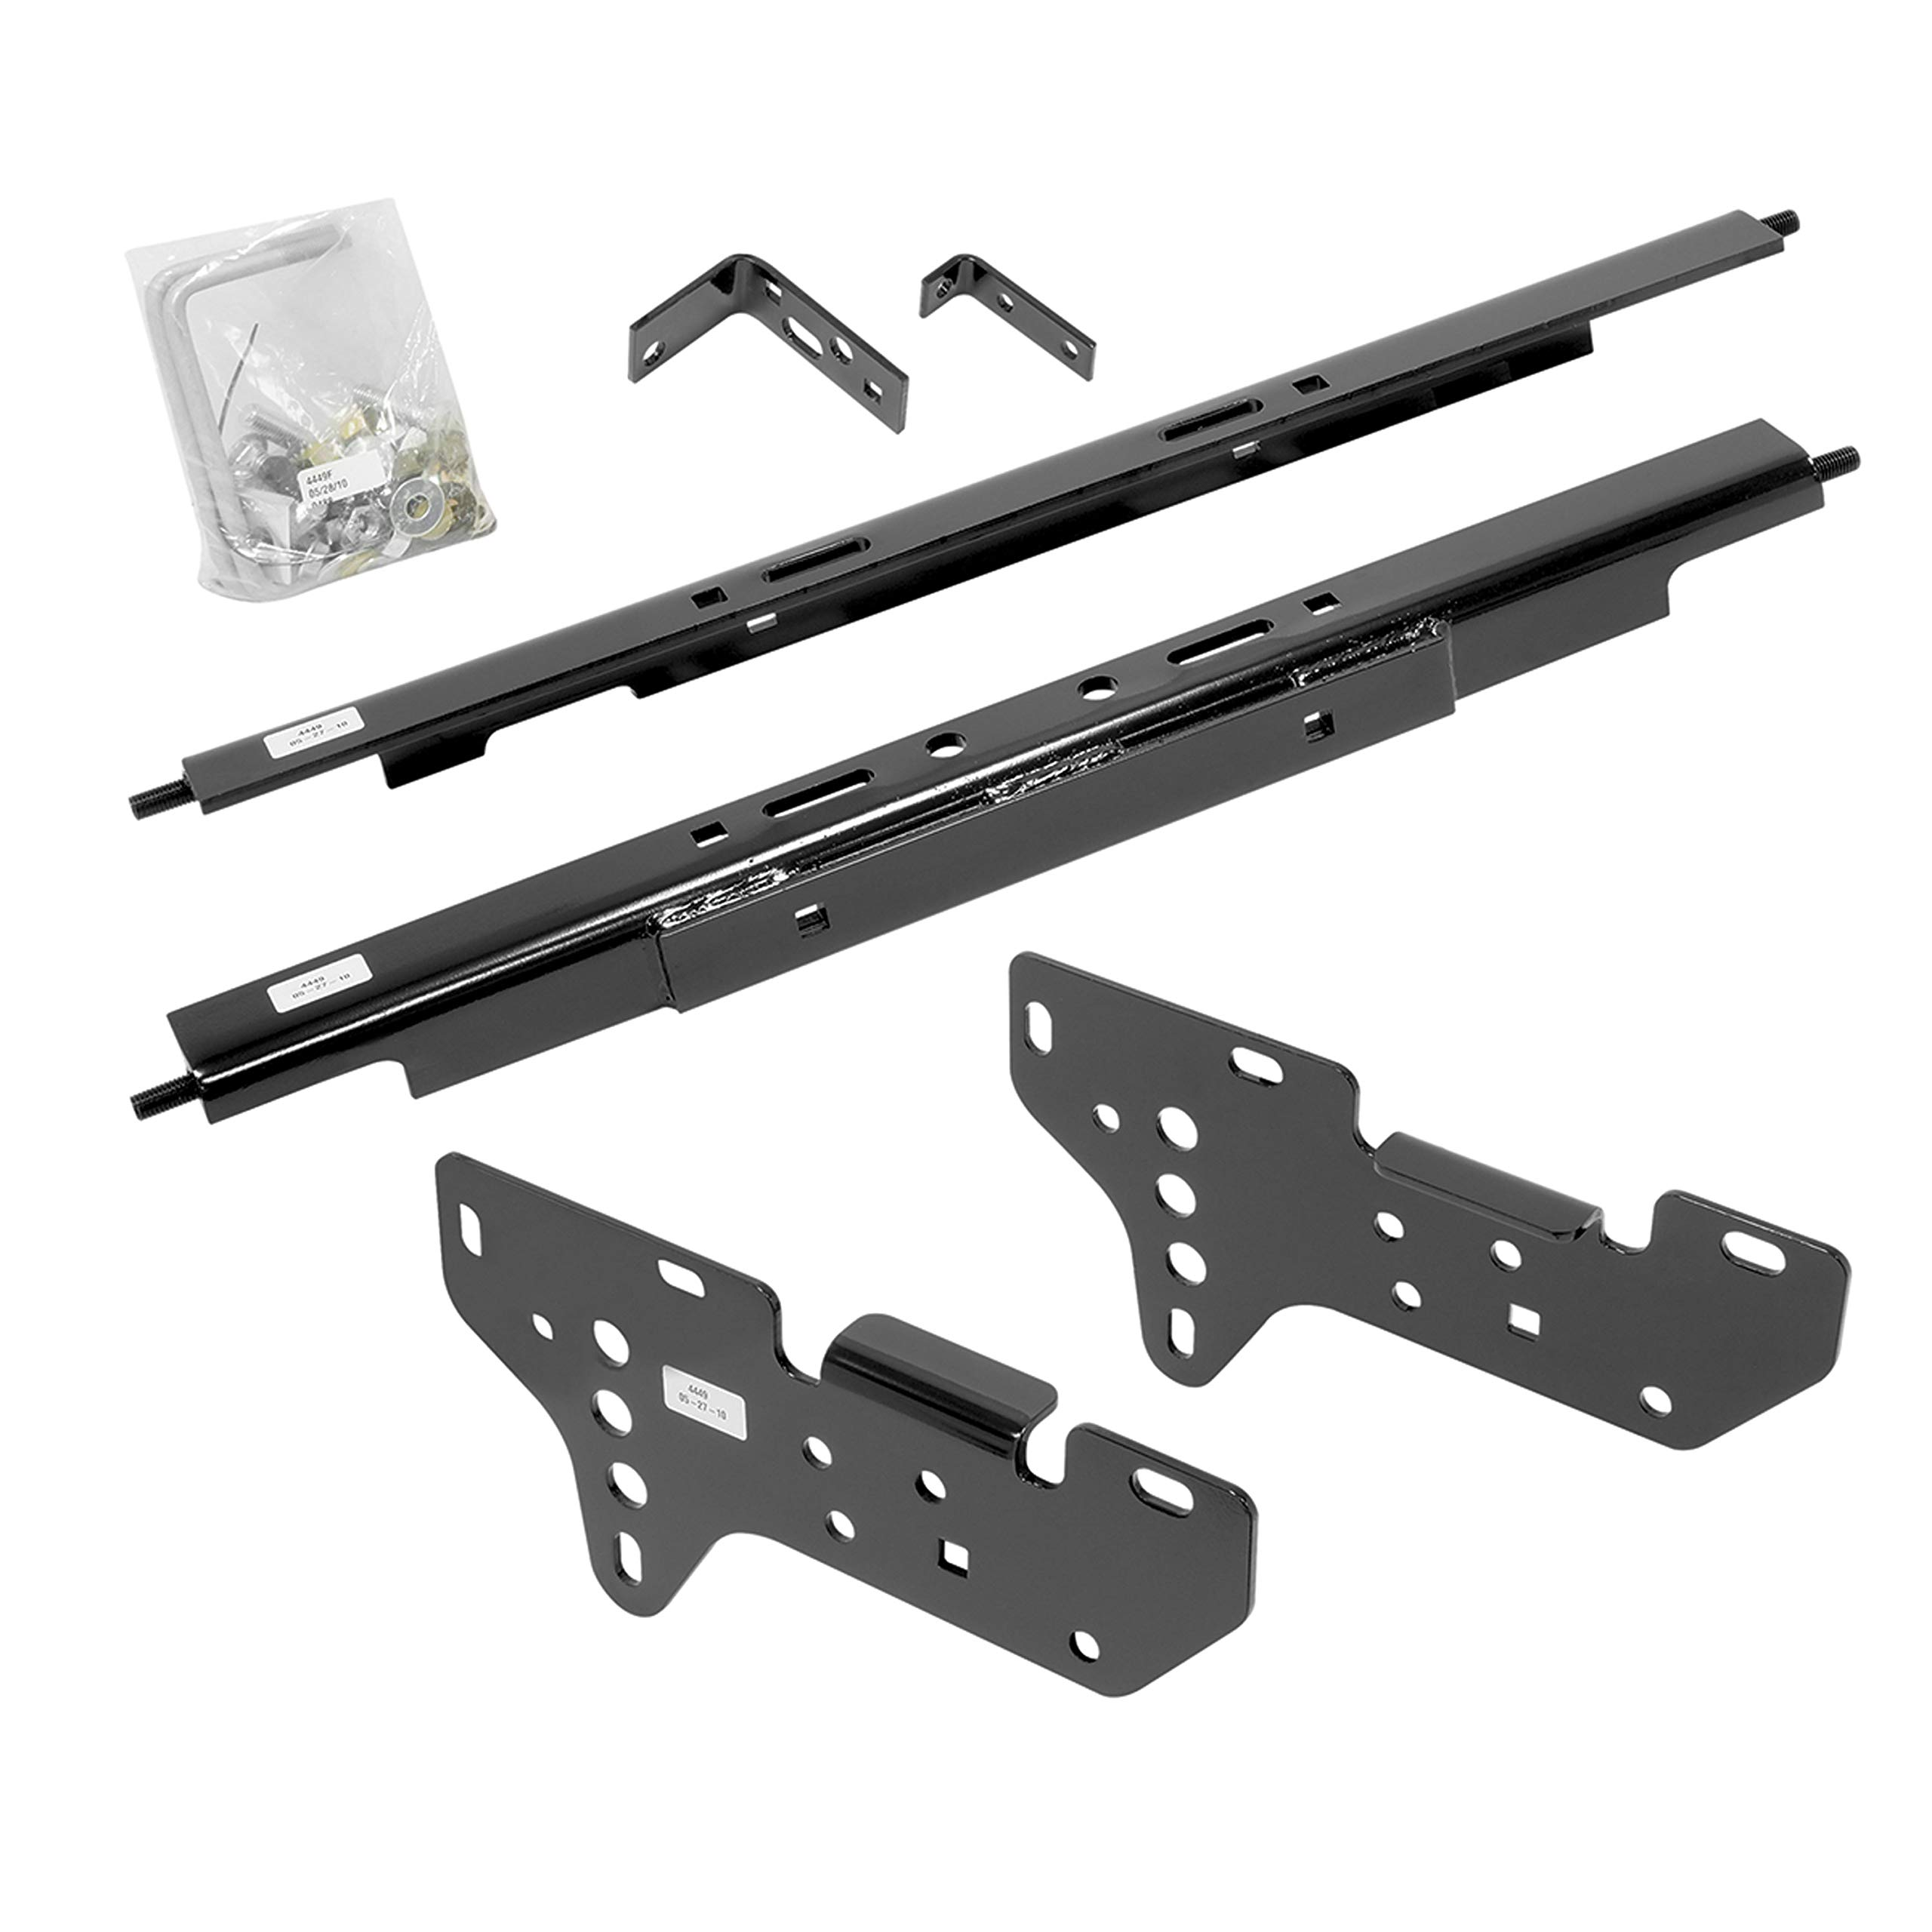 Draw-Tite 4449 Gooseneck Rail Kit for Ford by Draw-Tite